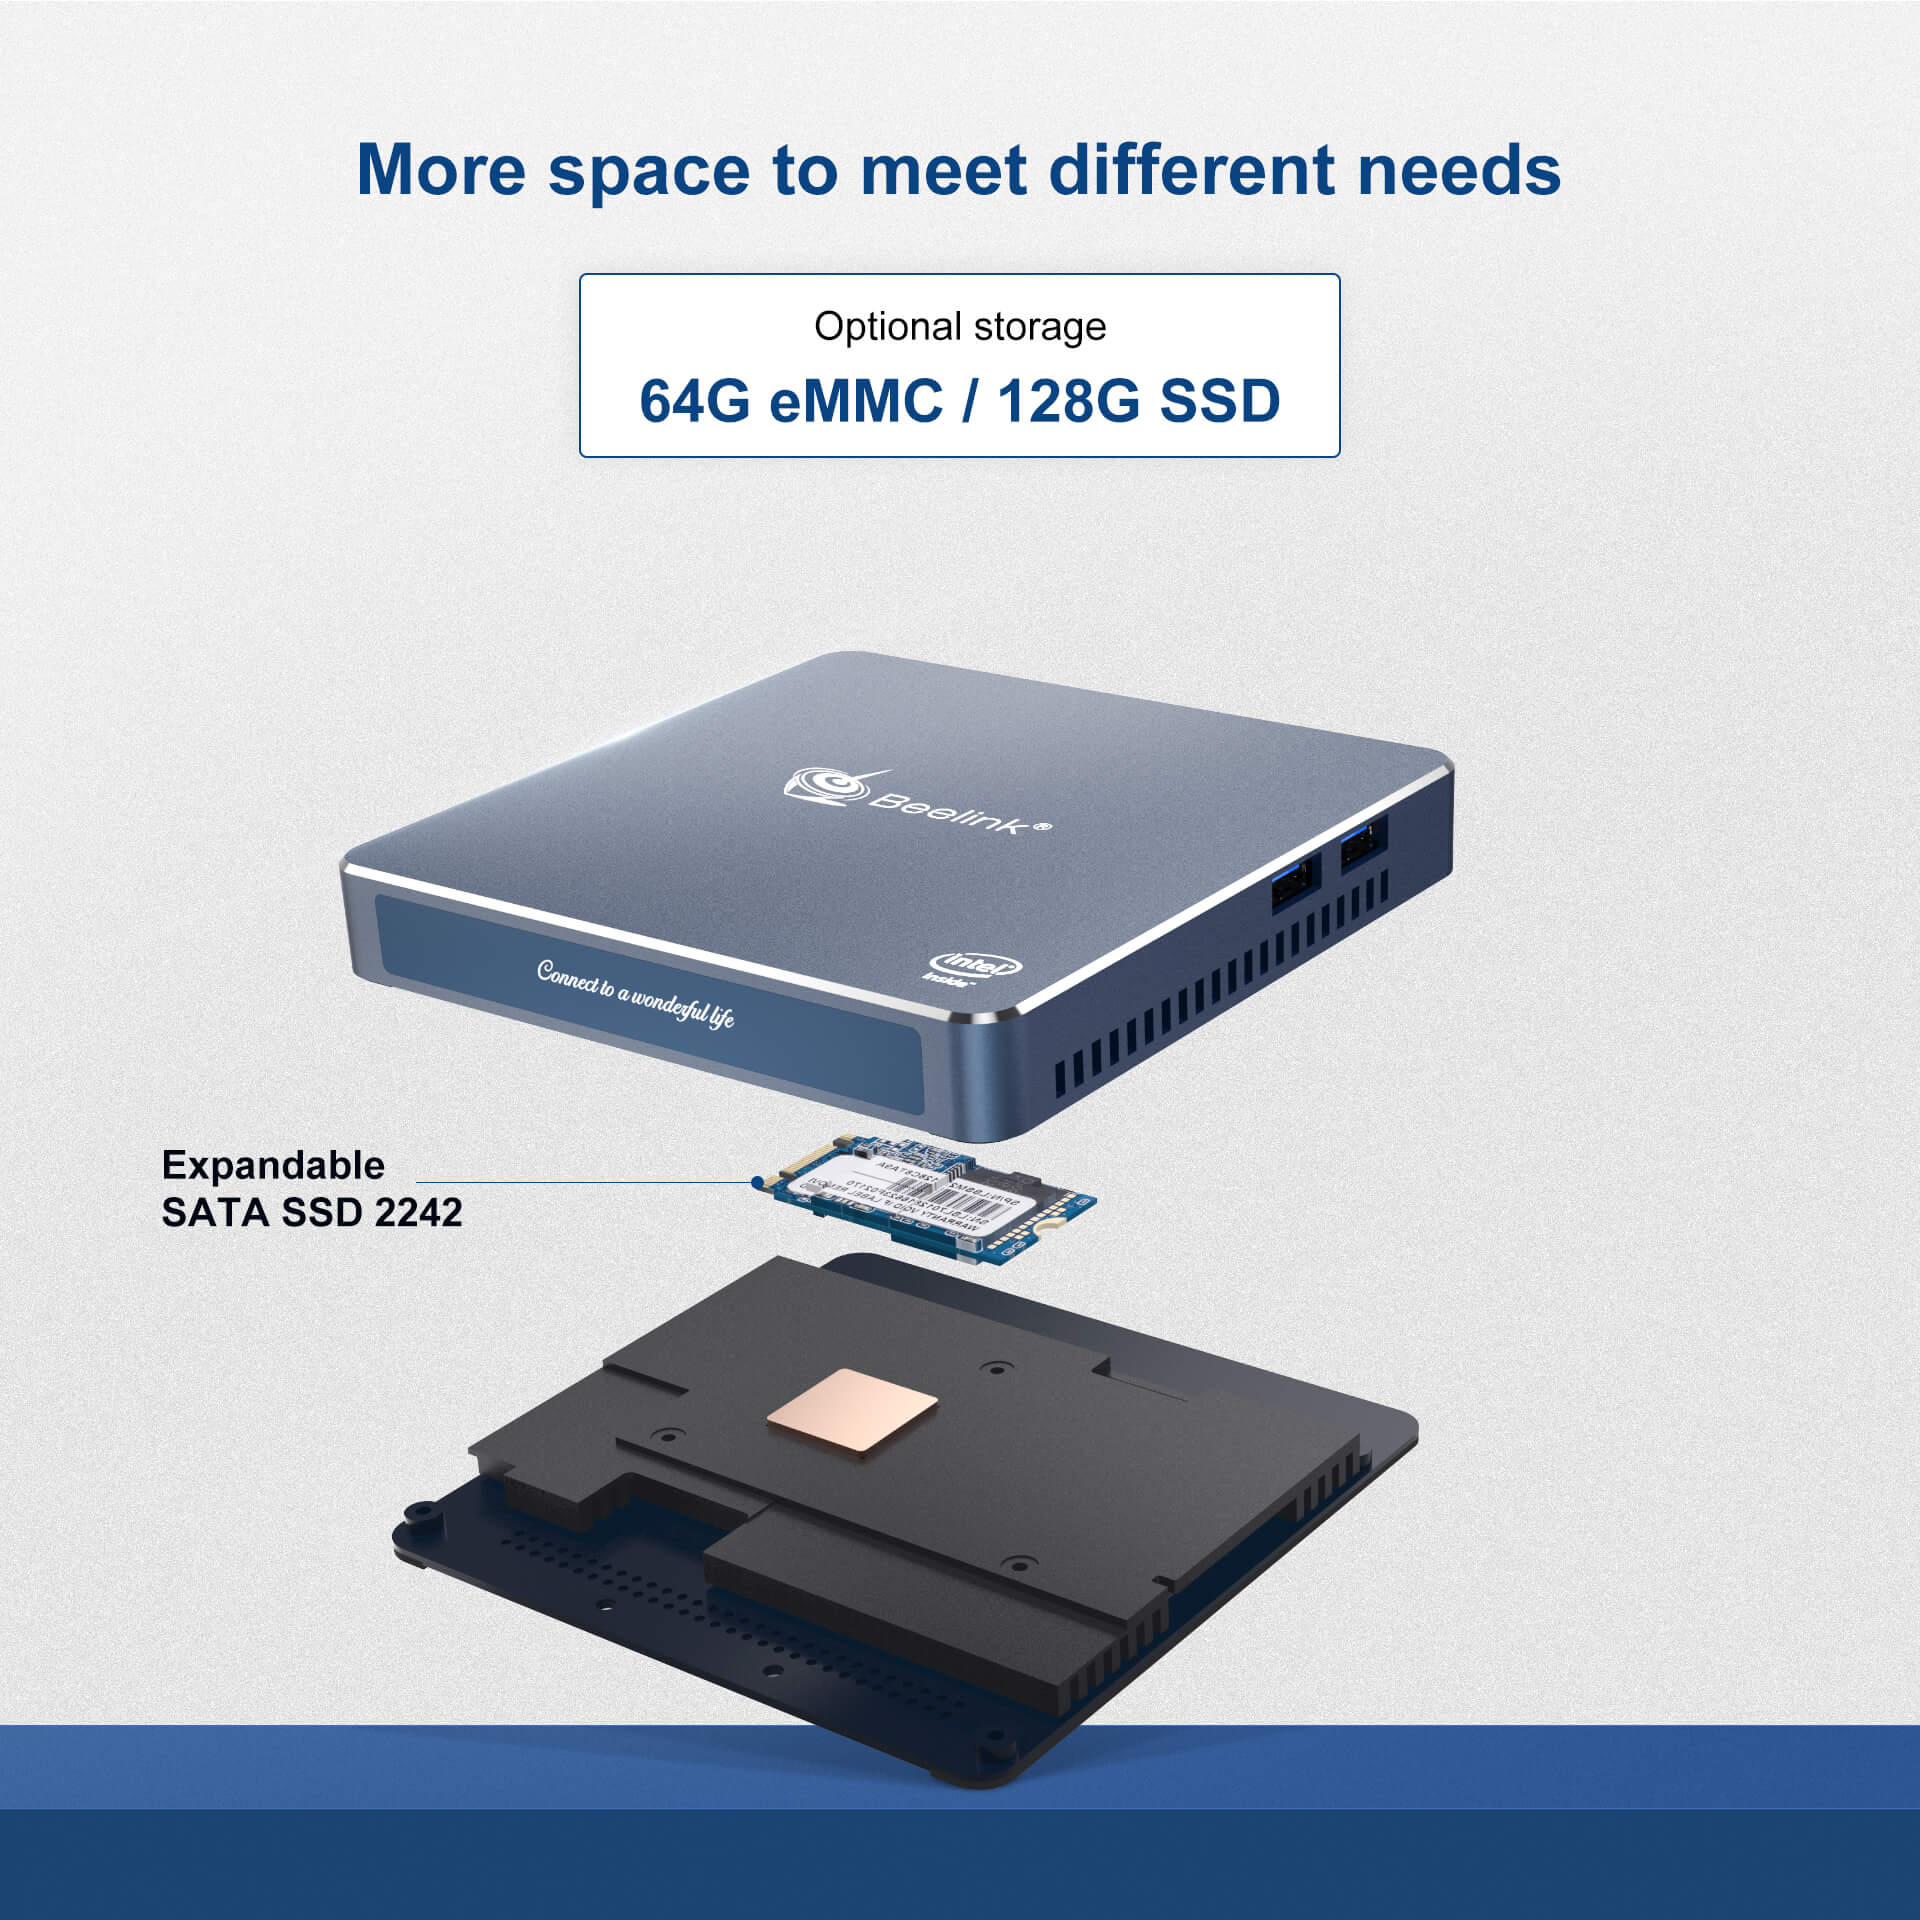 Beelink Gemini-M Double Screen Ultra-Thin Mini PC More space to meet different needs